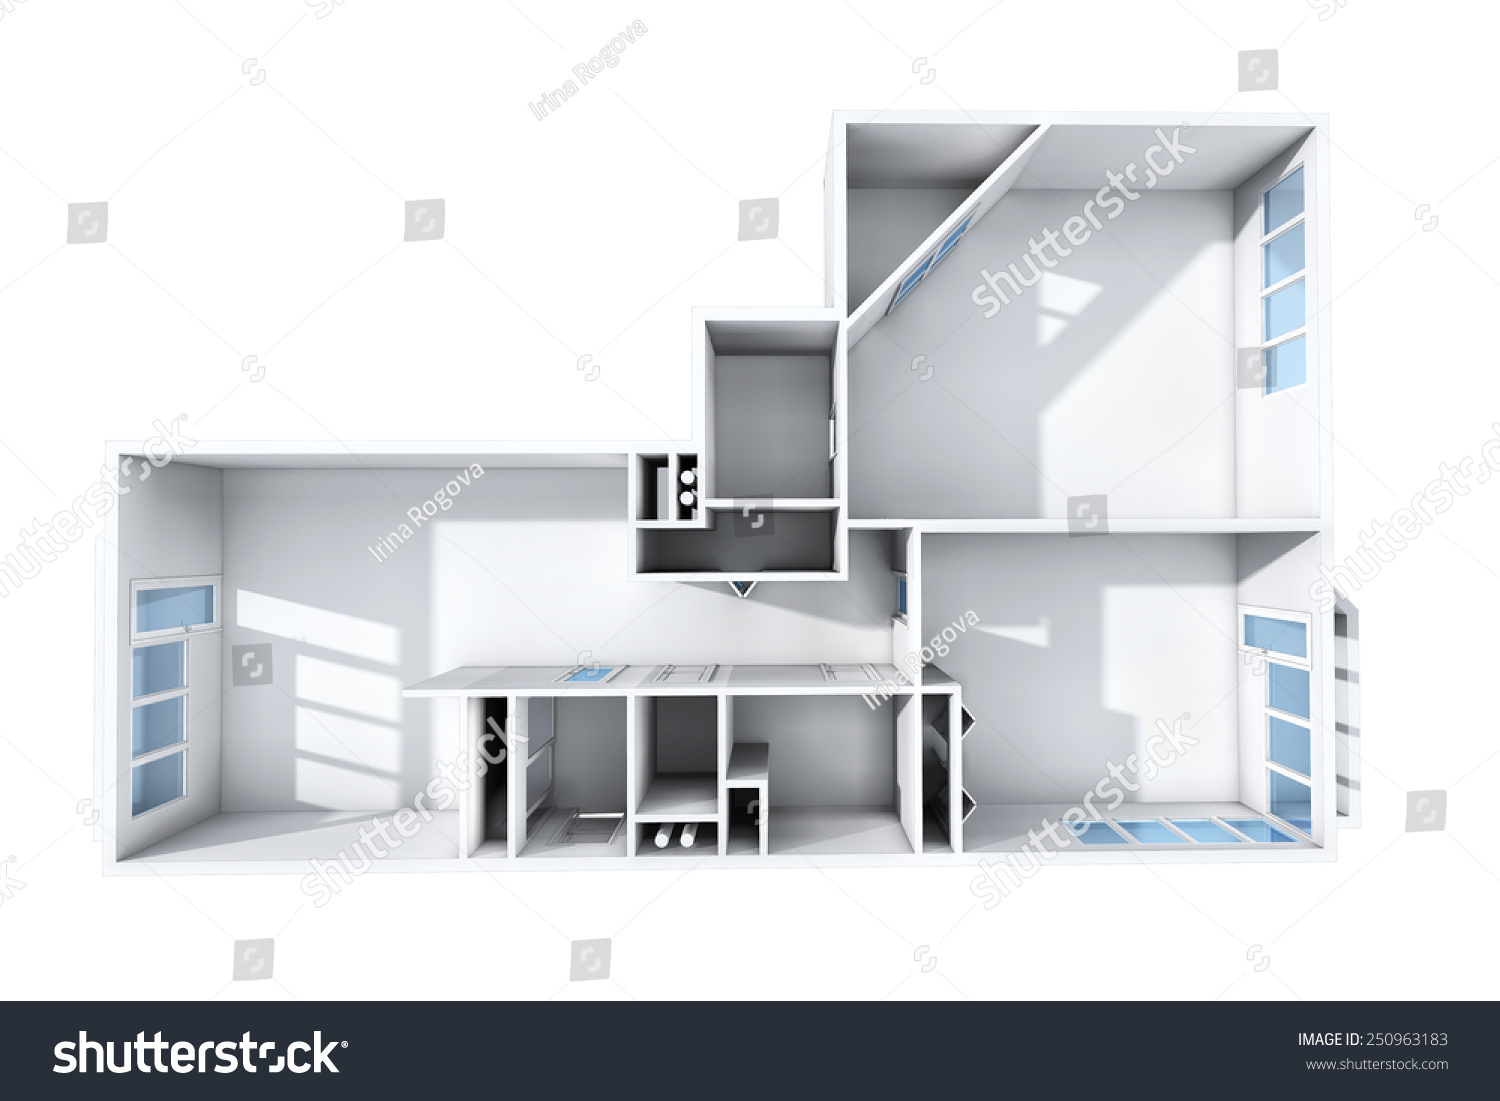 Model Of The Three Room Apartment. The Empty Apartment Without Furniture